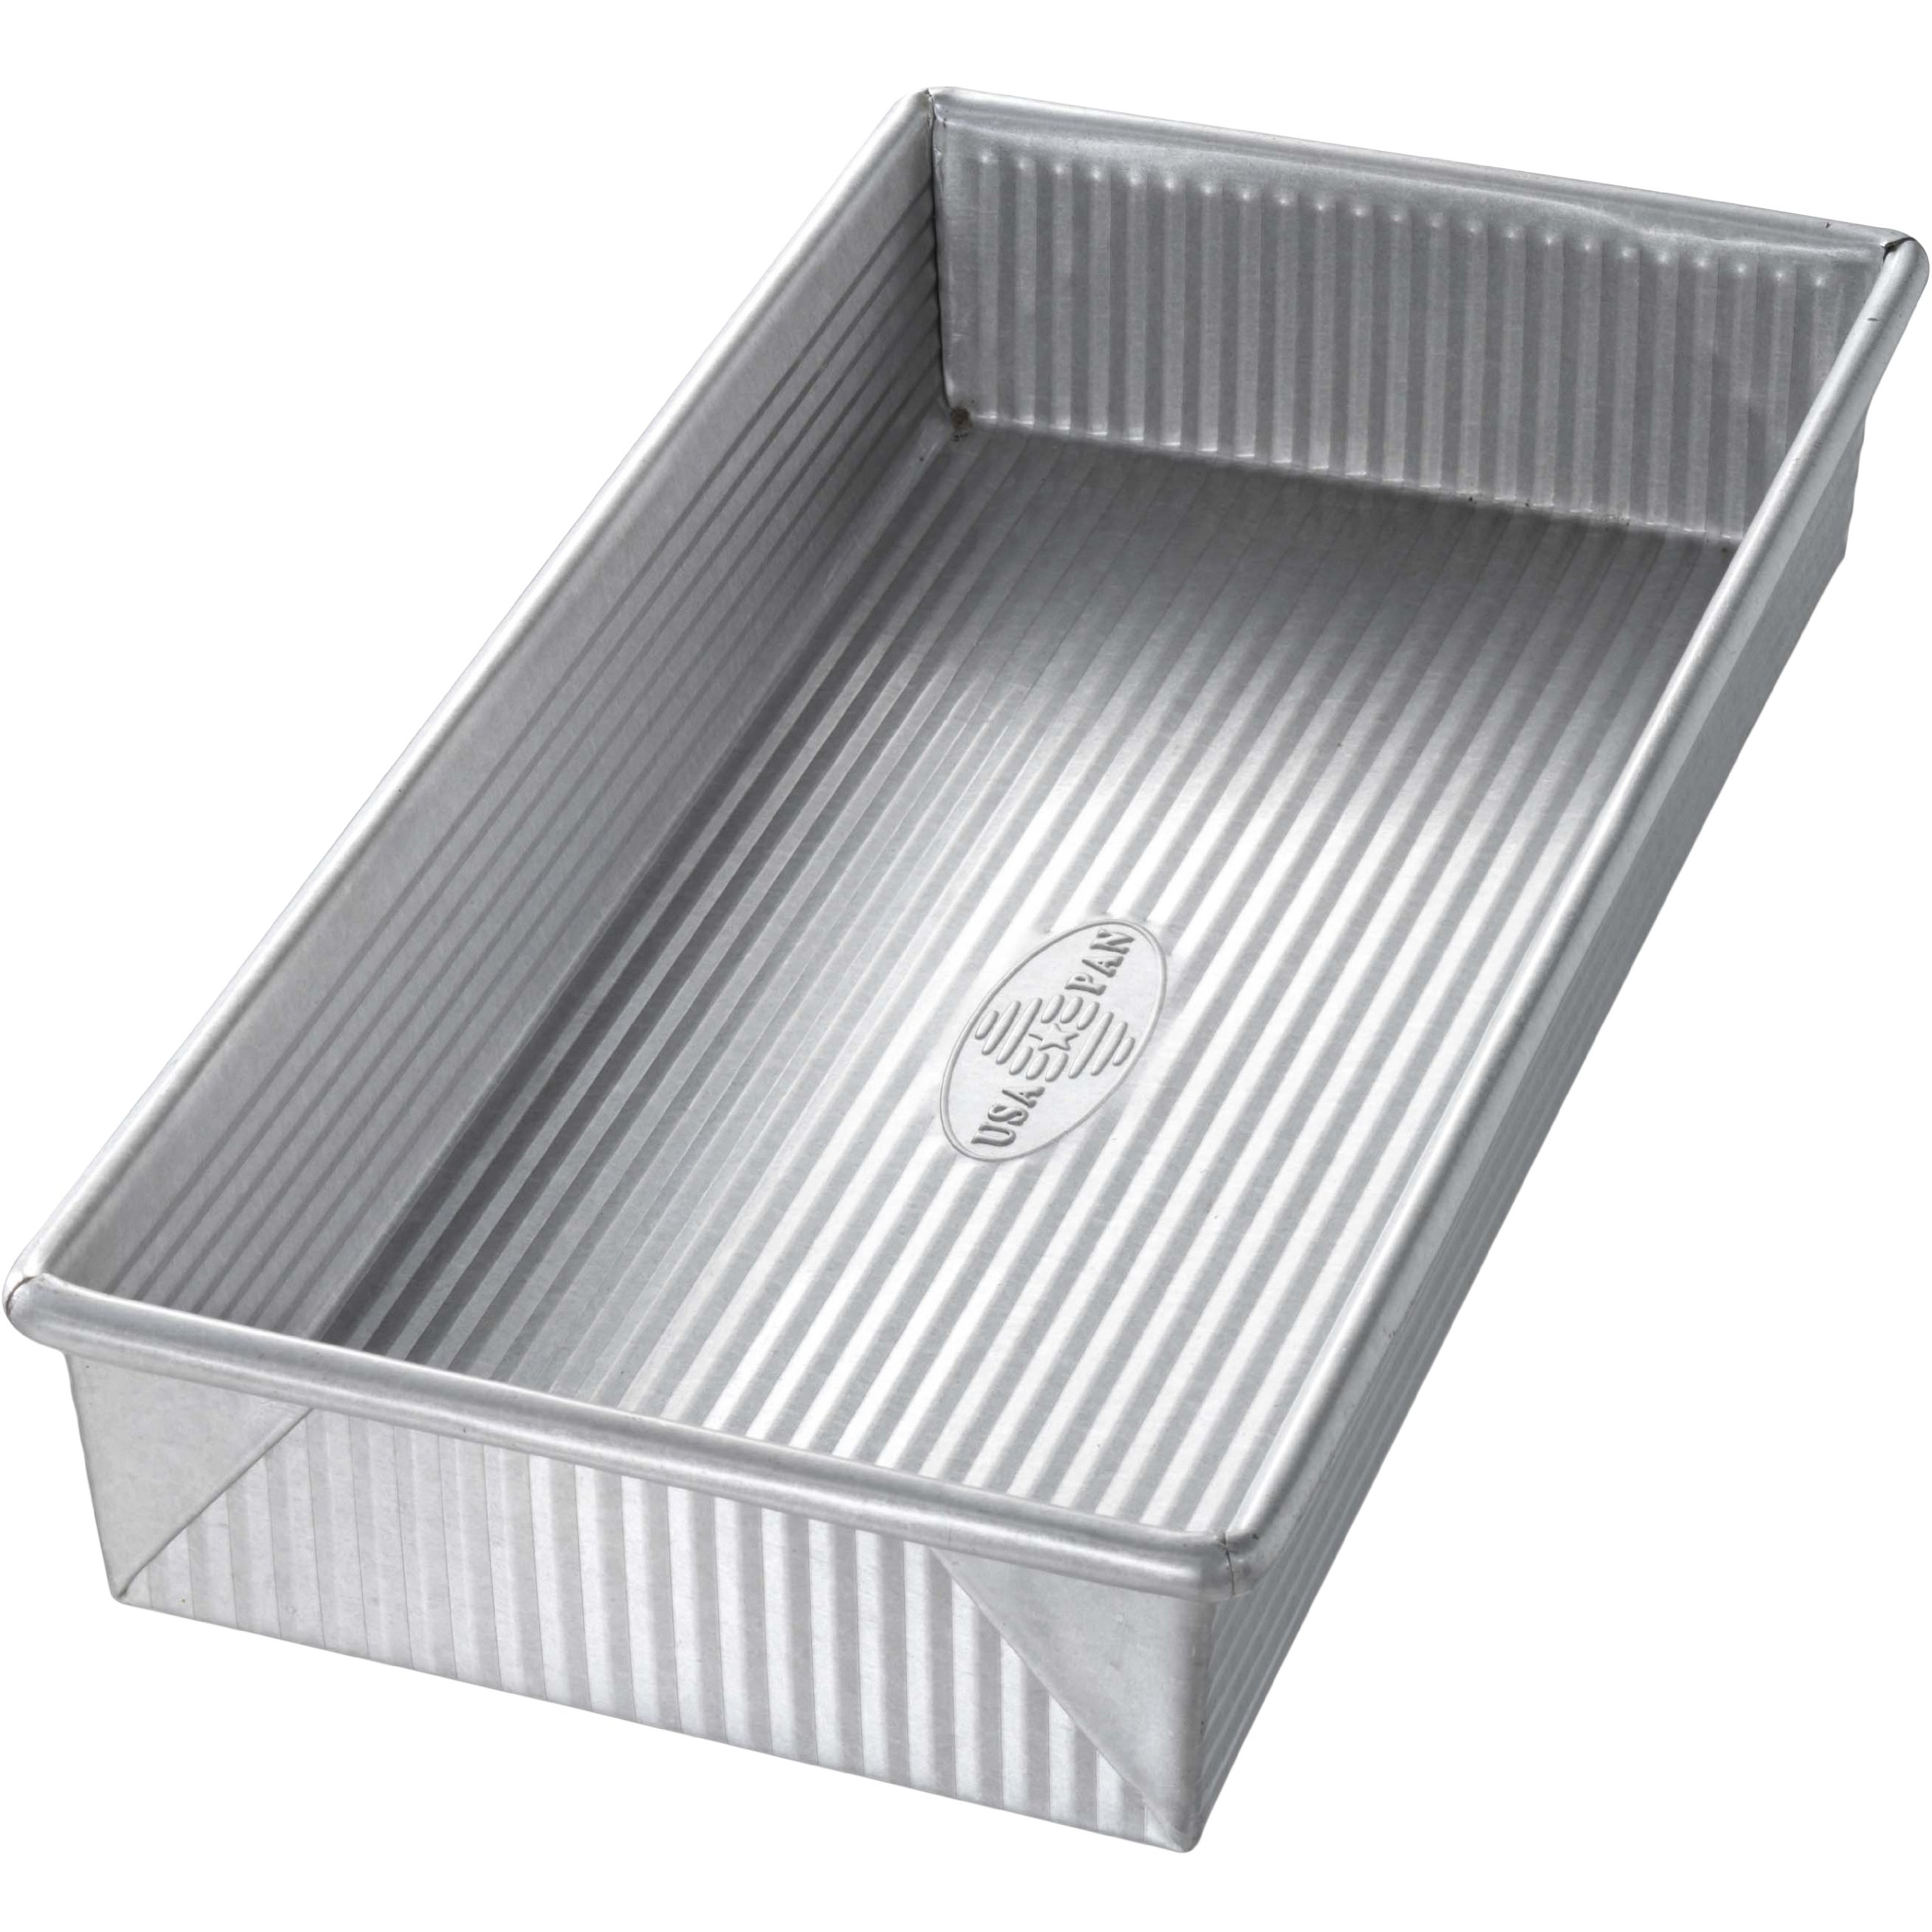 USA Pan Bakeware Aluminized Steel Biscotti Pan